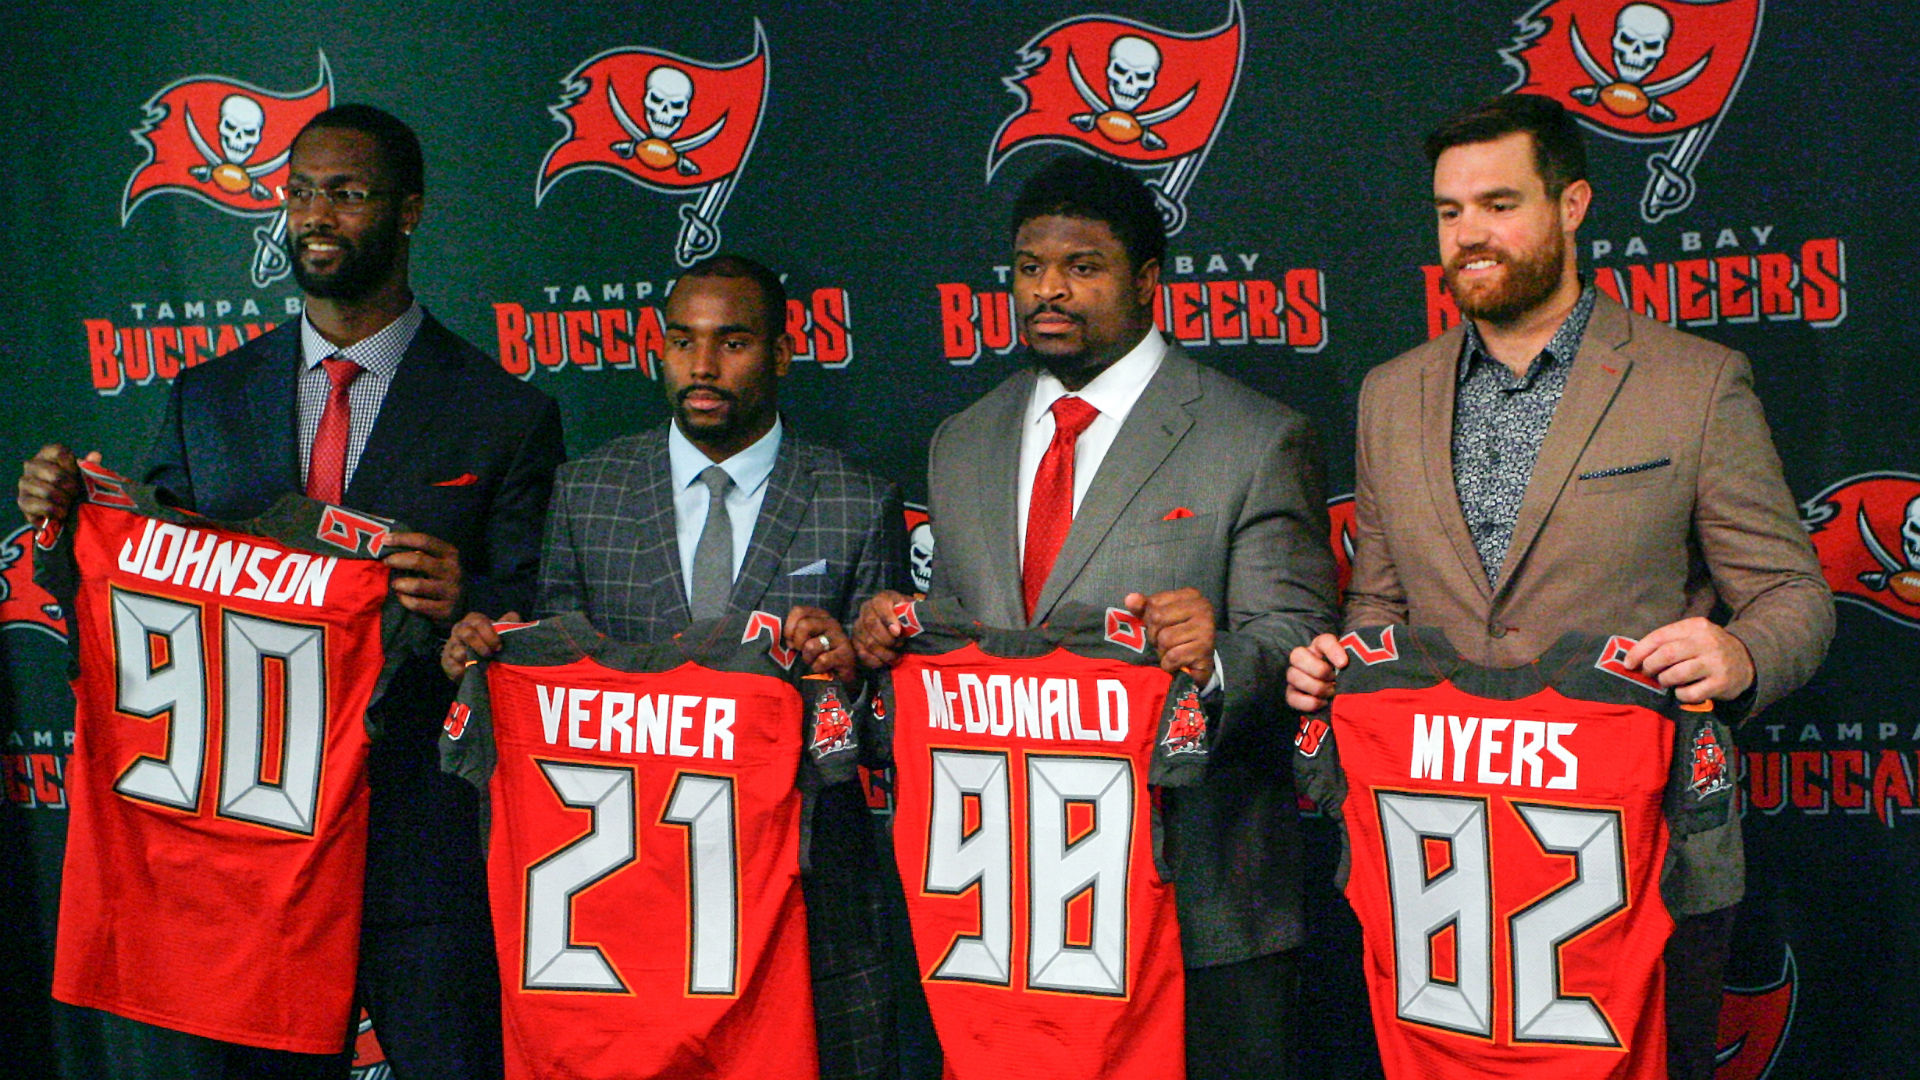 Buccaneers_Signings_AP_0317_DL